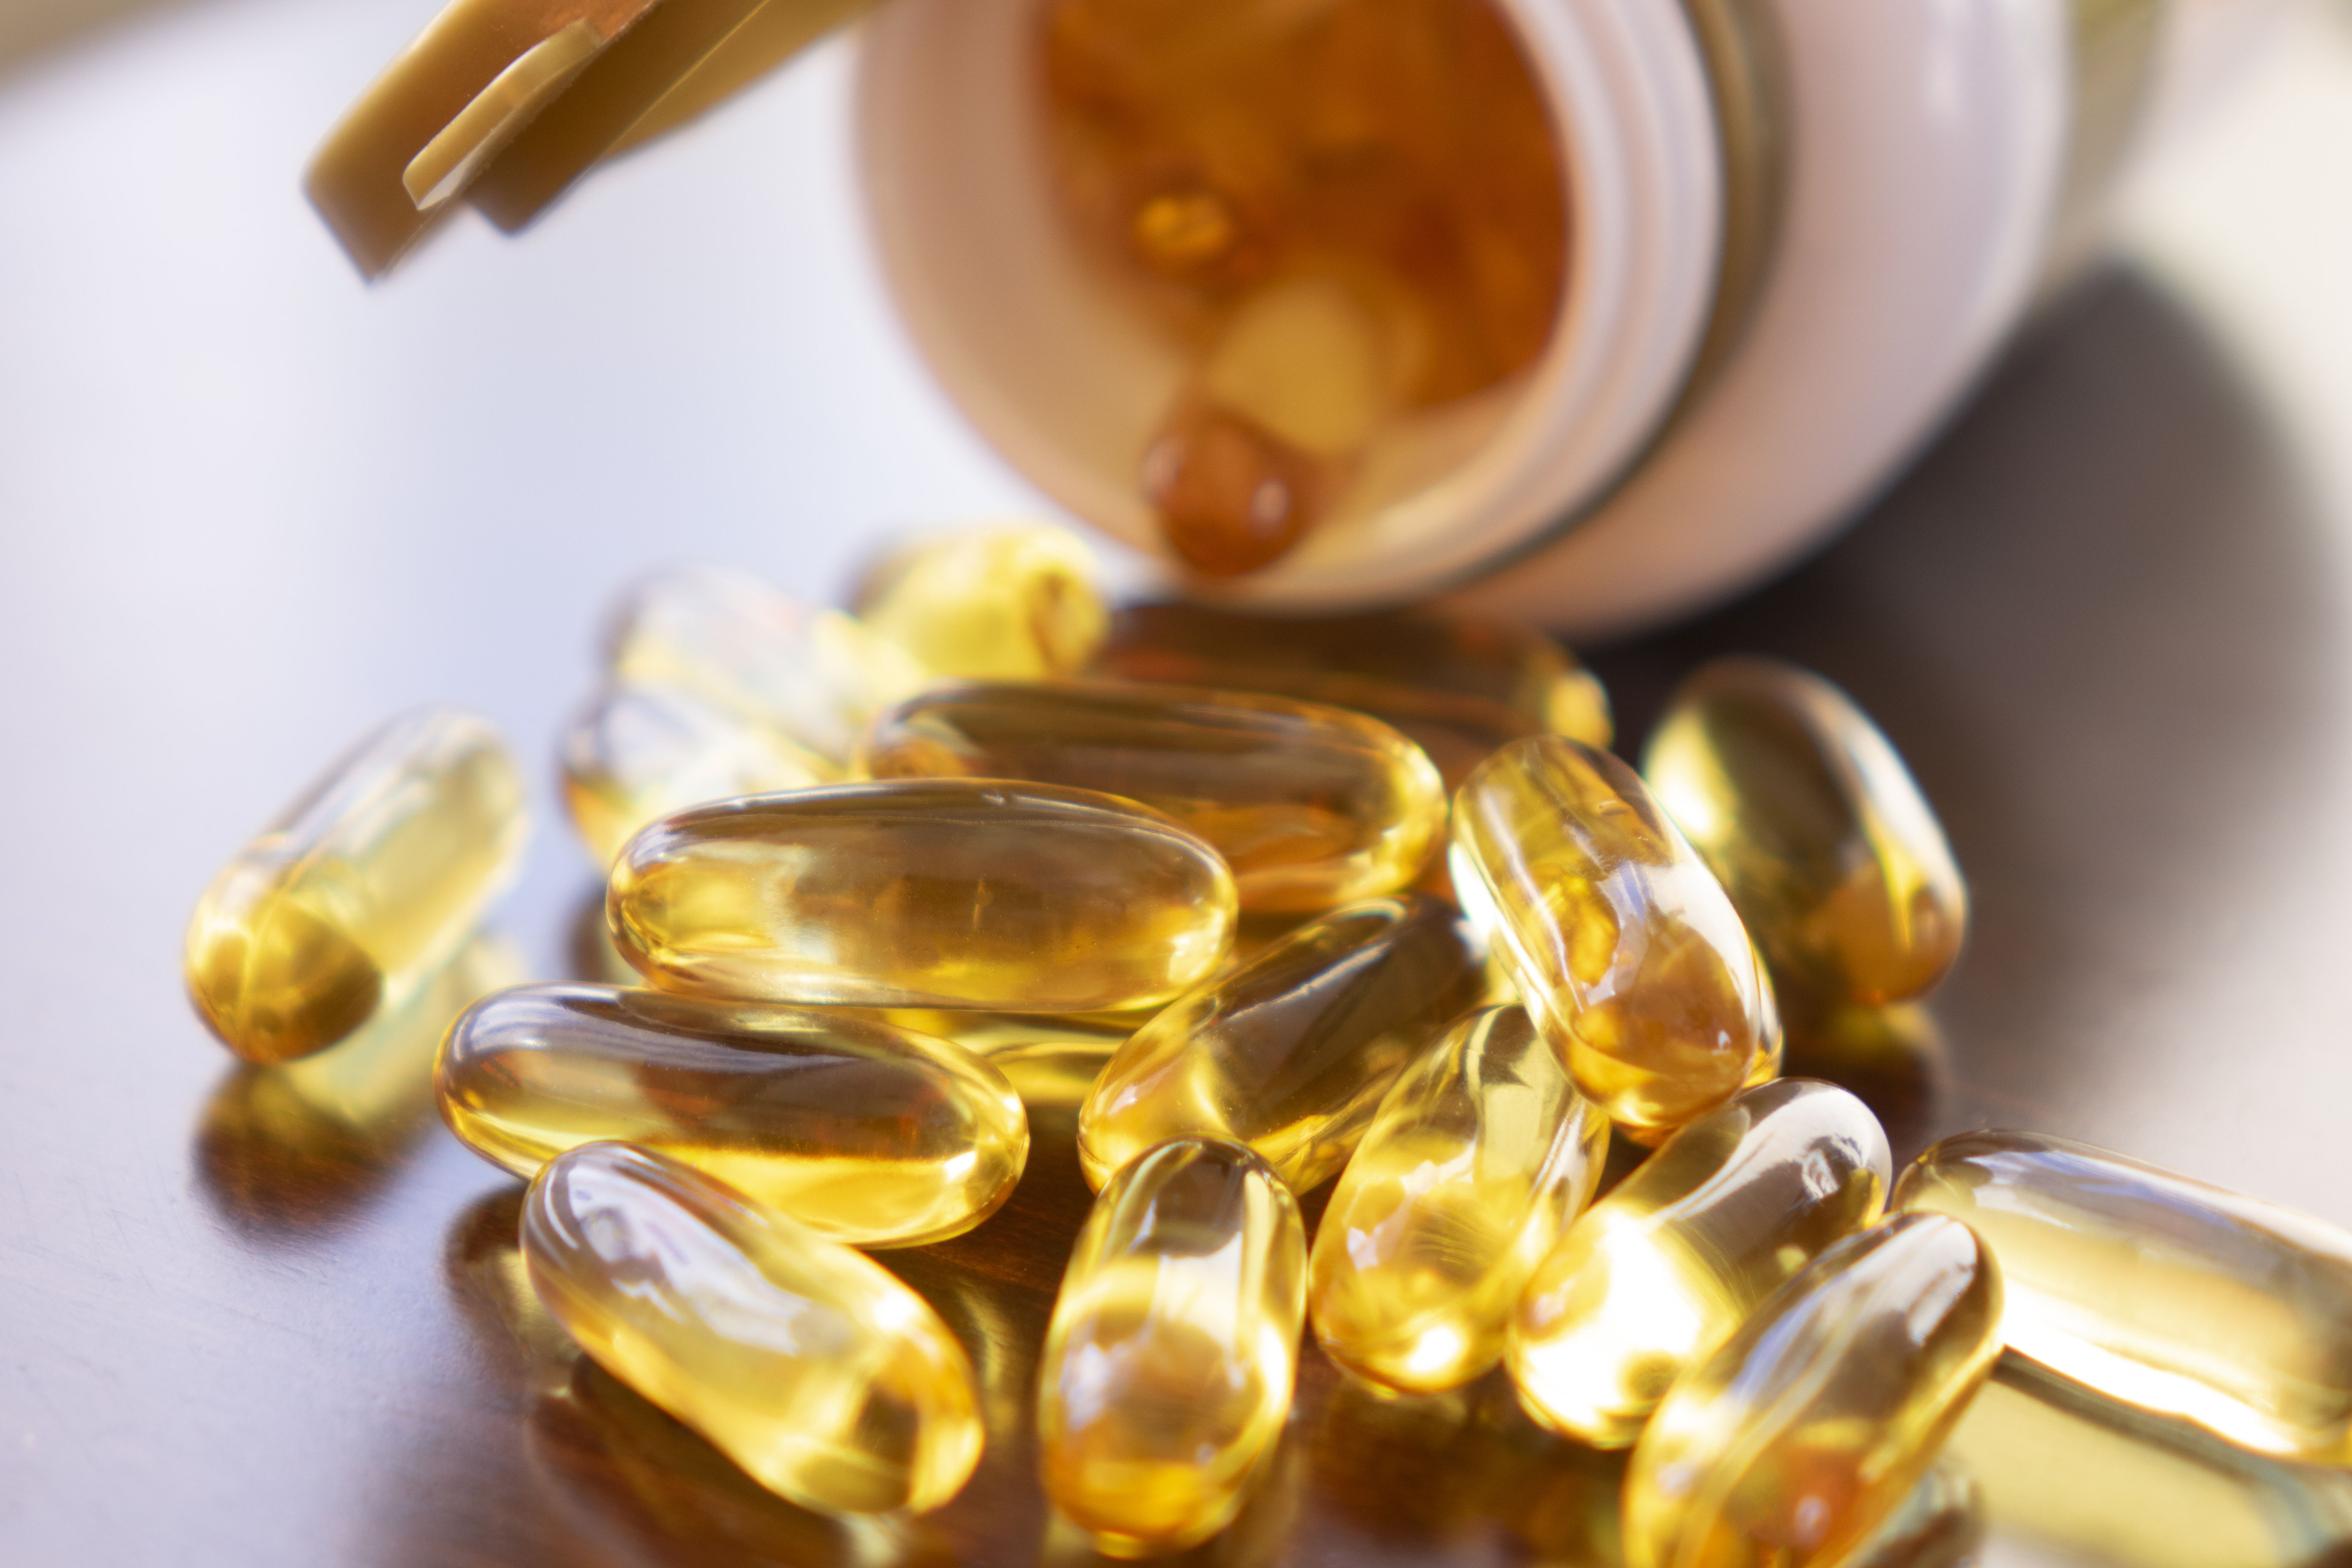 Fish oil capsules with omega 3 and vitamin D in a glass bottle on wooden texture, healthy diet concept, close up shot.